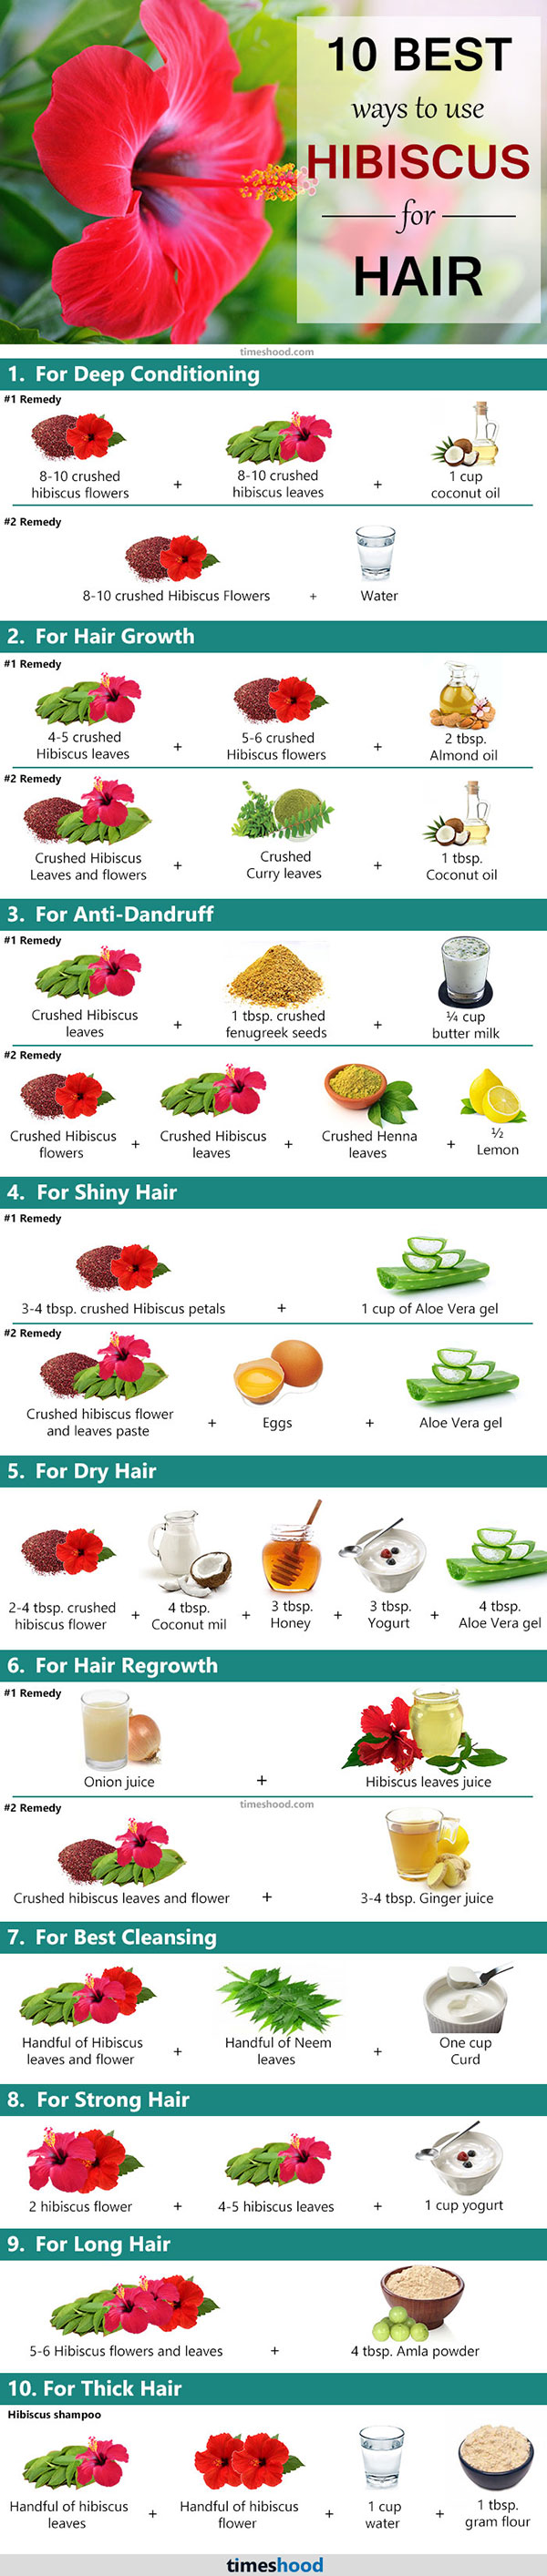 10 Best hibiscus hair mask for all hair type. DIY Hibiscus hair mask for soft, shiny and beautiful hair. How to use hibiscus for hair. Tips to grow hair remedy at home. DIY Remedy for long thick and shiny hair.